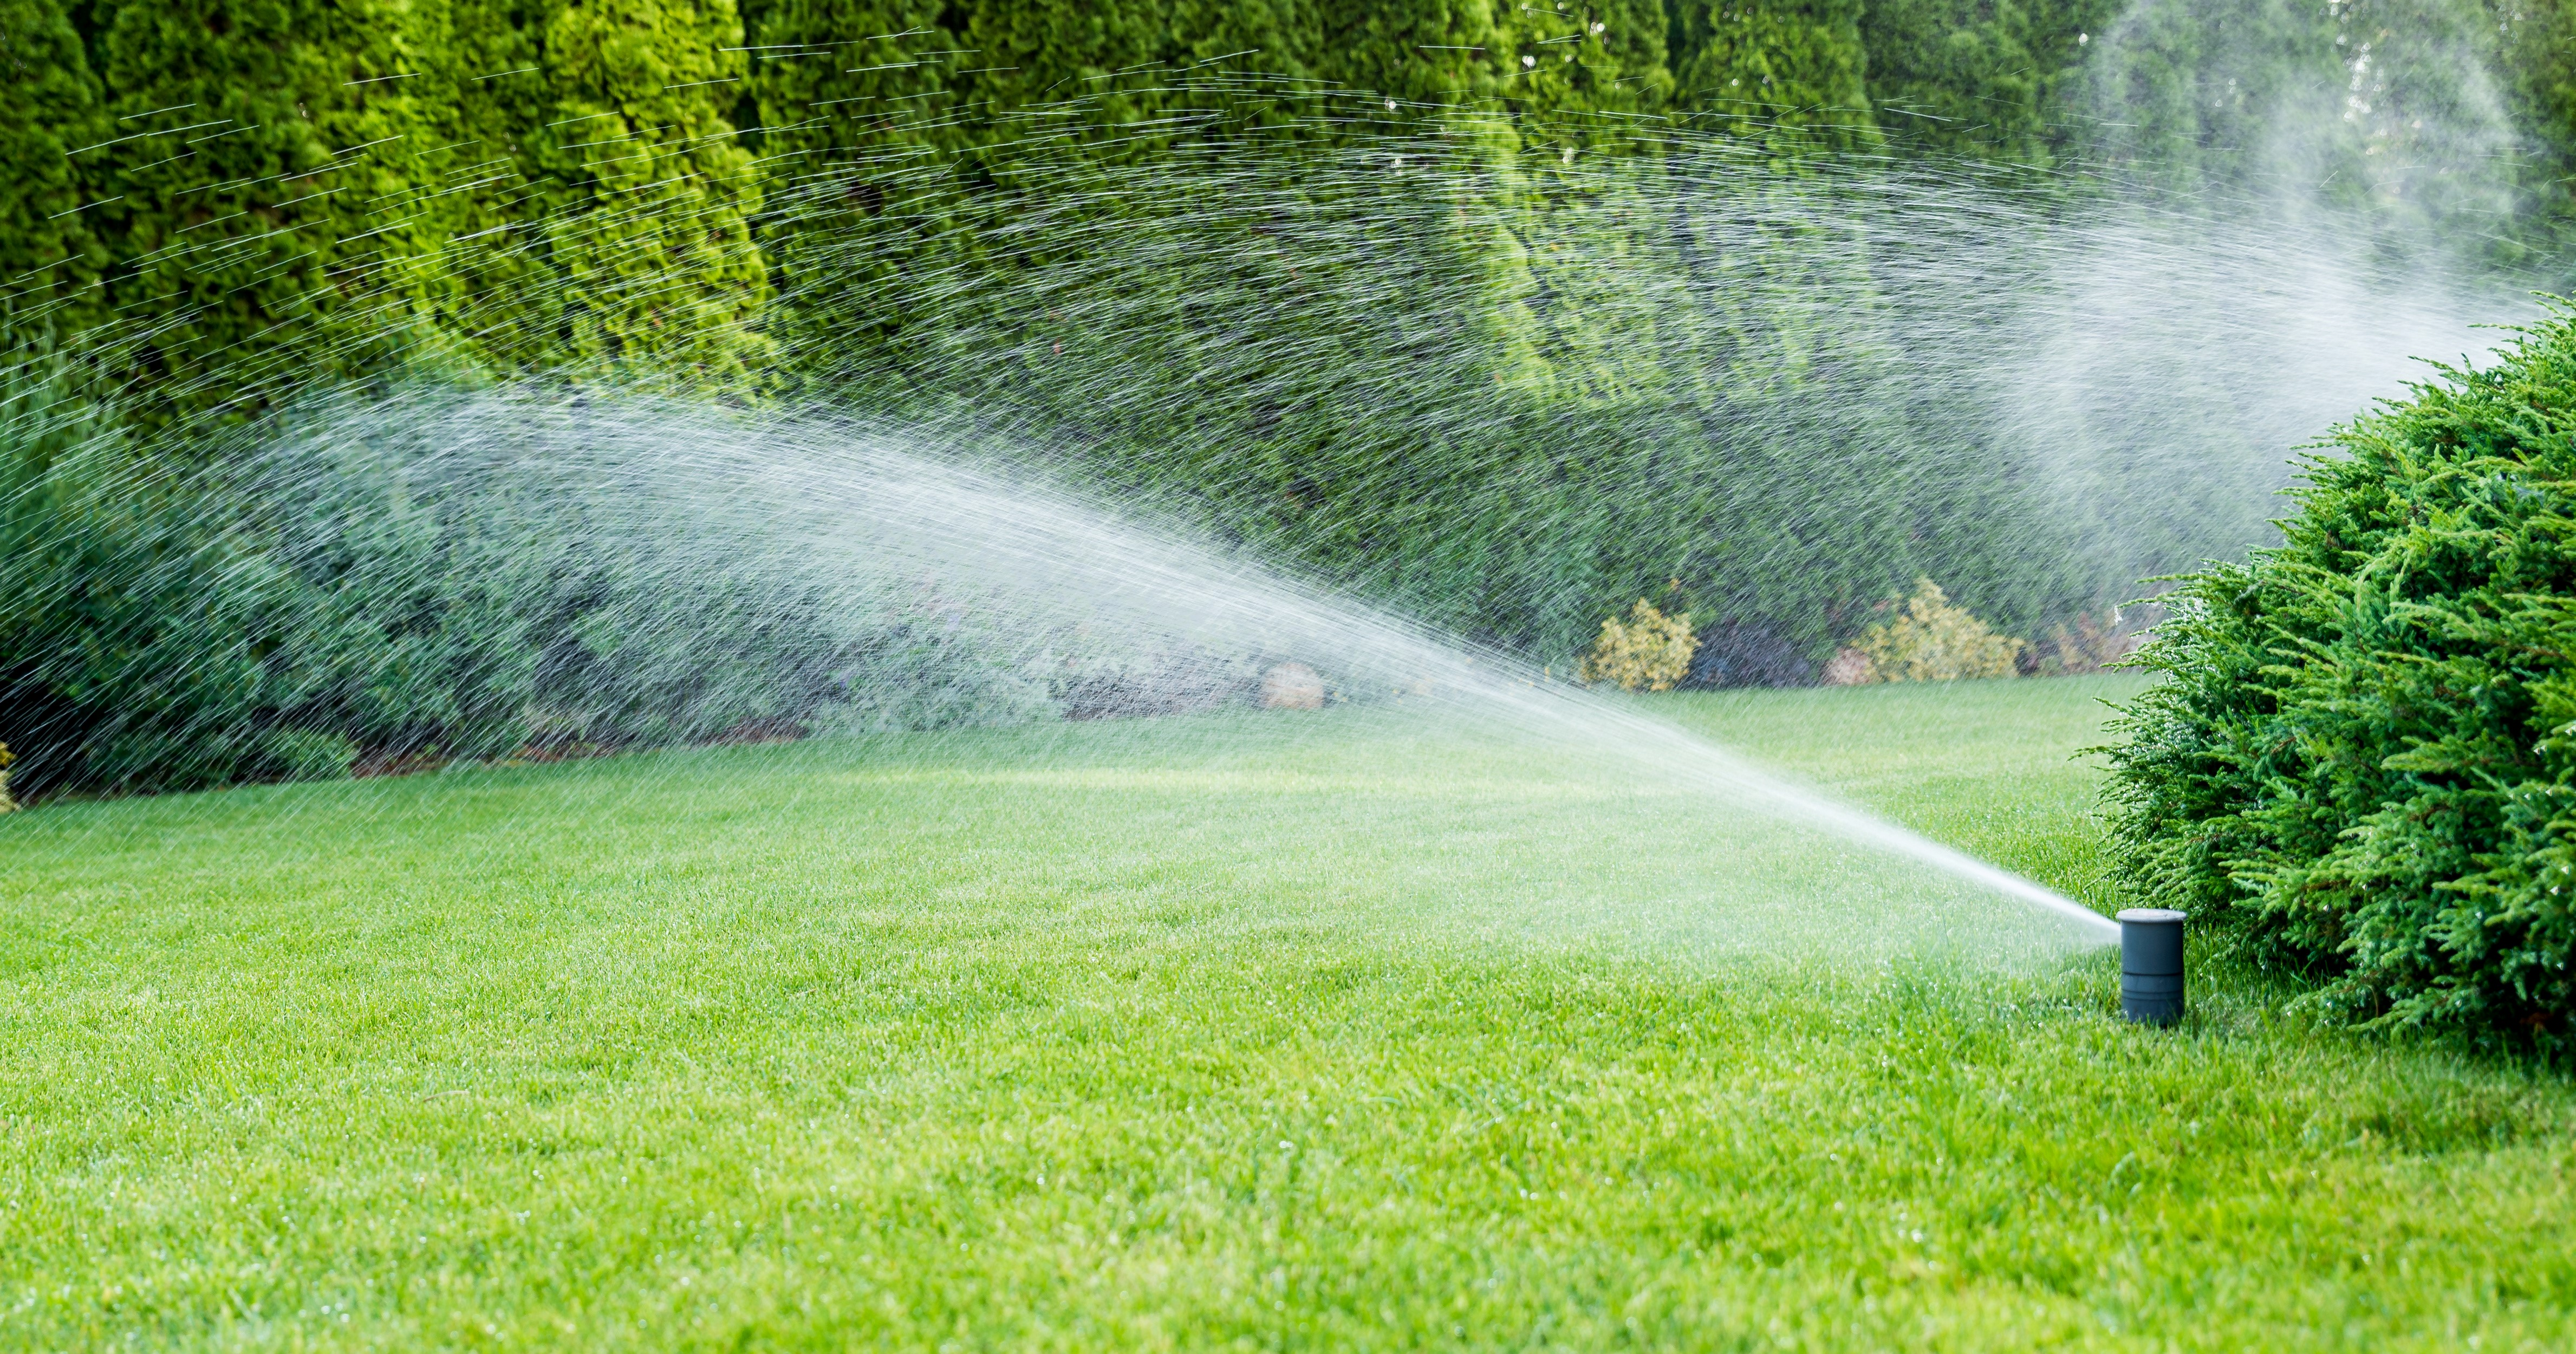 When You Need an Improved Irrigation System